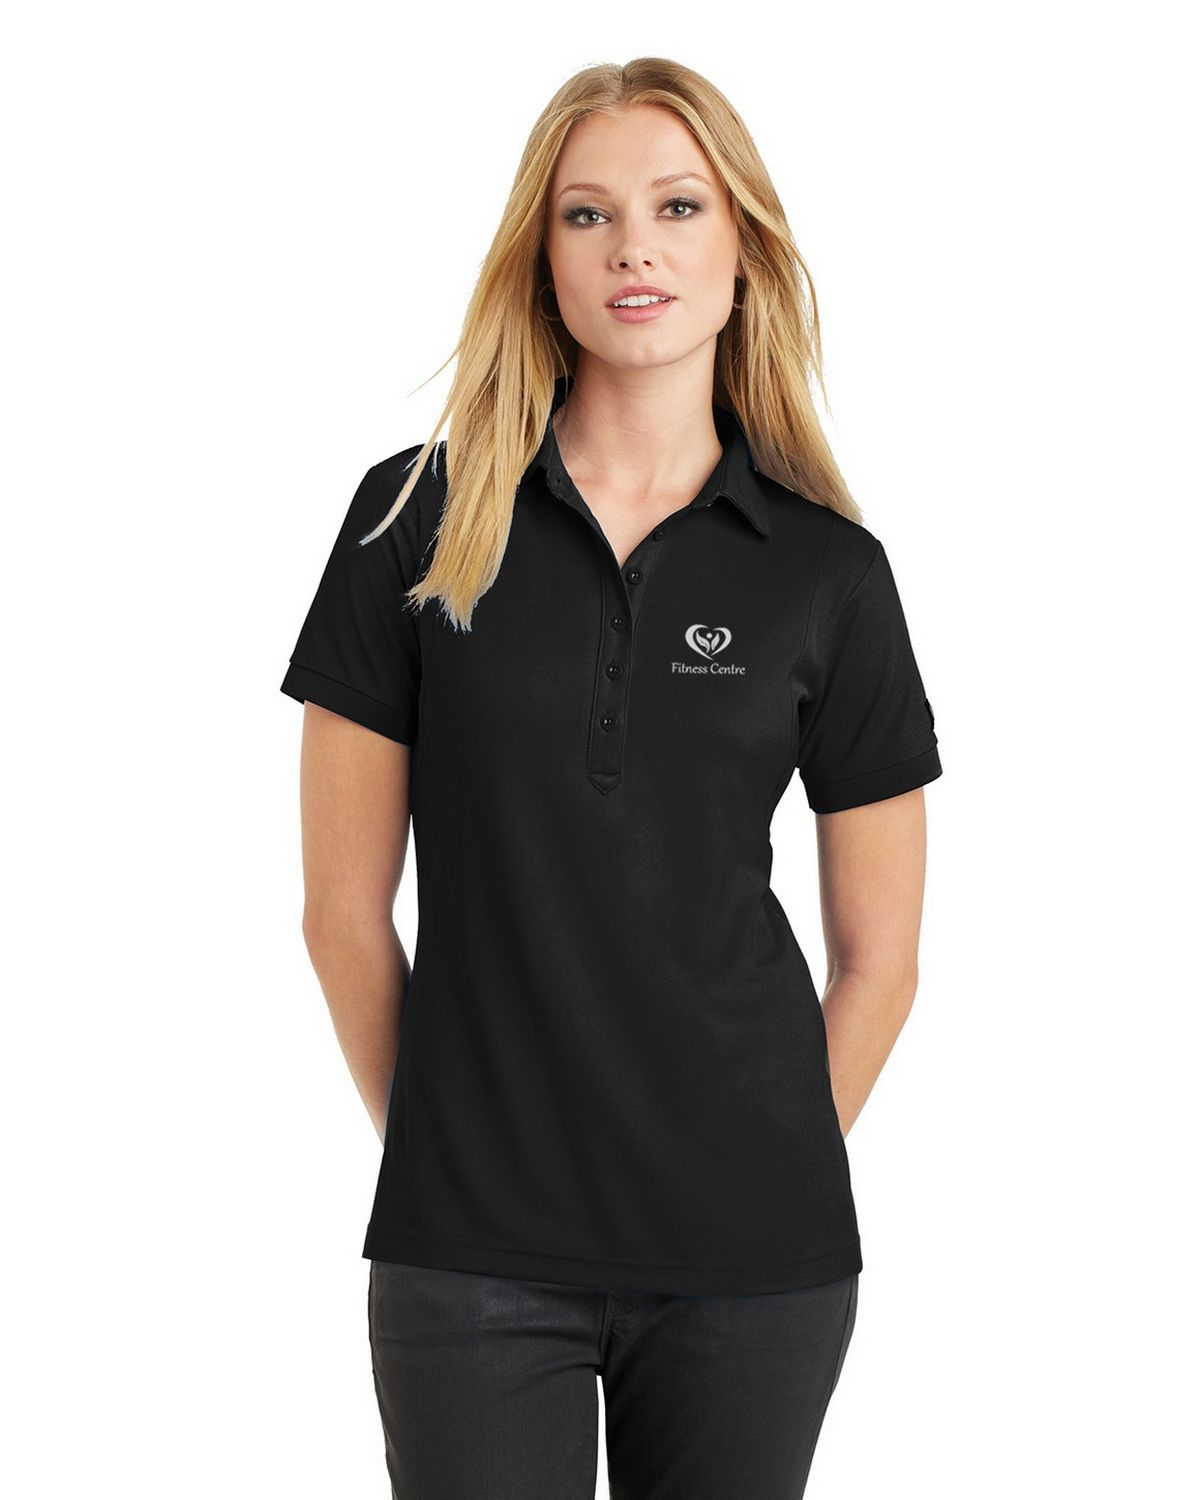 Size Chart For Ogio Logo Embroidered Jewel Polo Shirt For Women